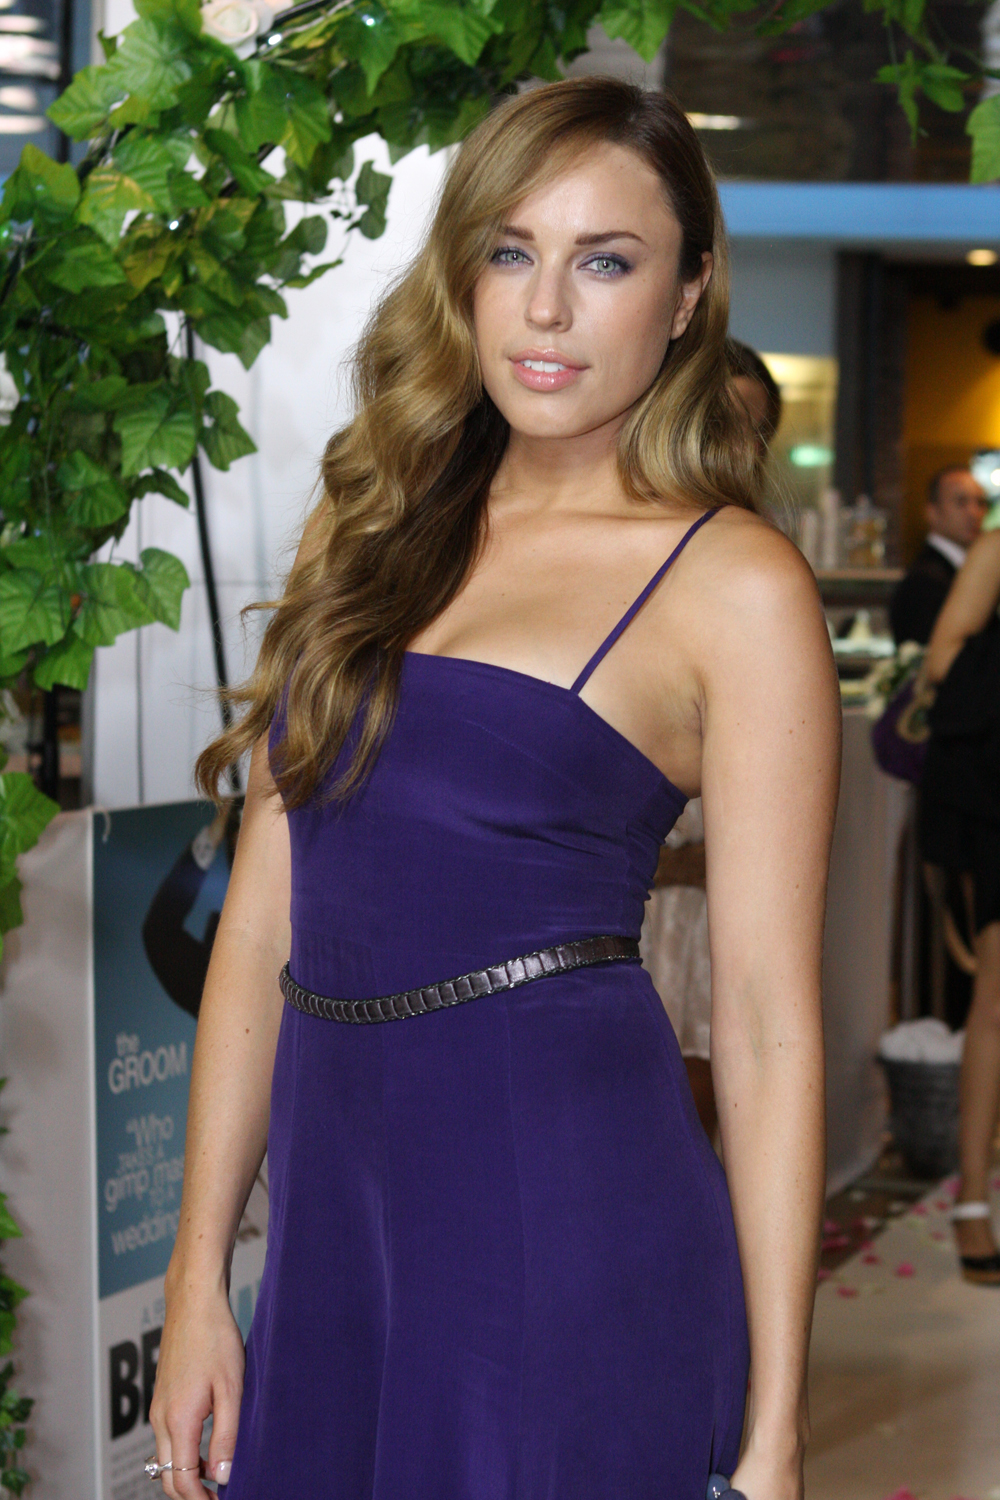 jessica mcnamee nudography